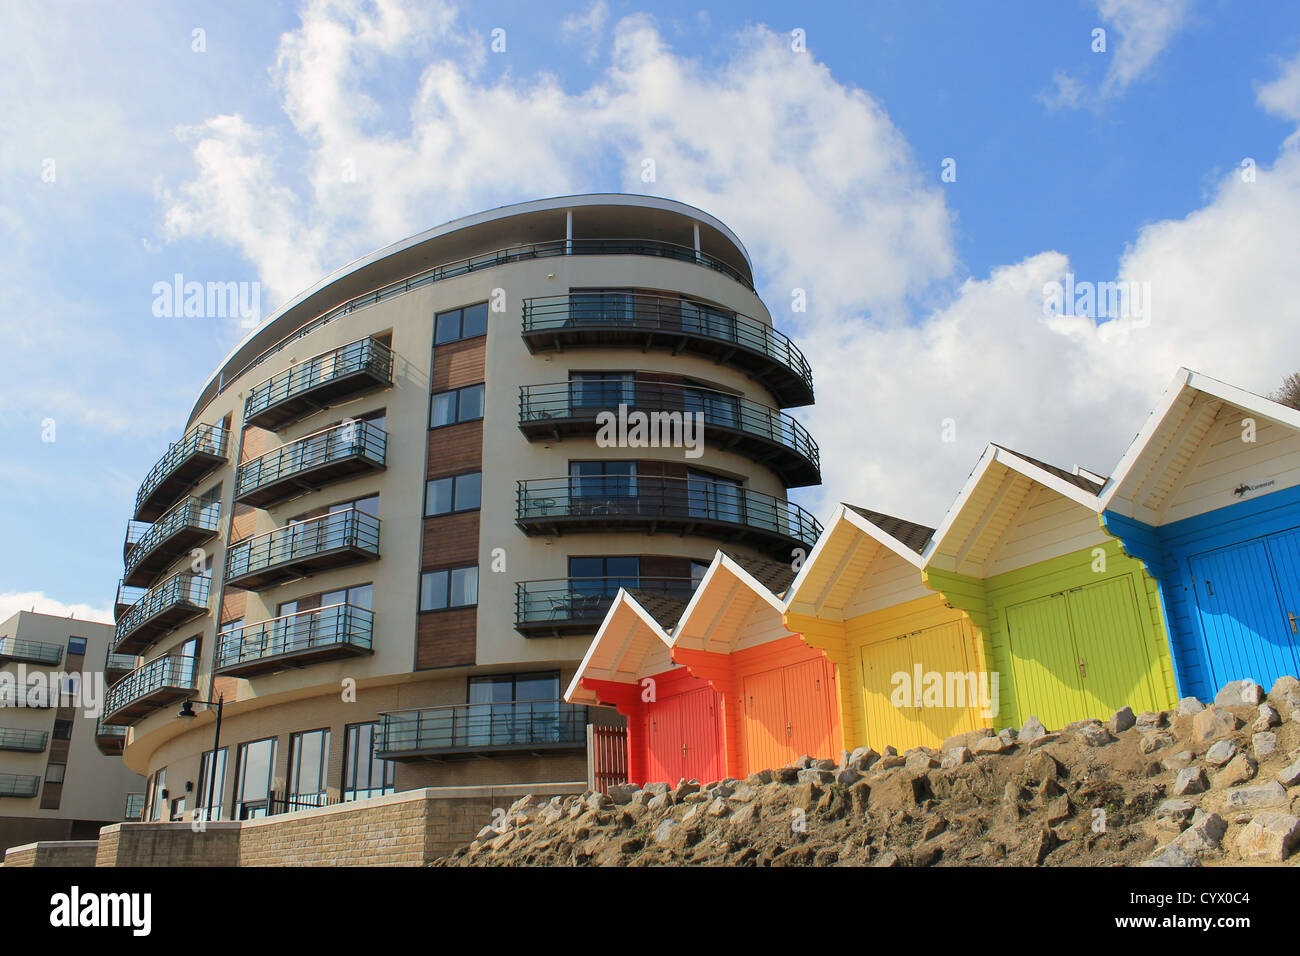 Scenic view of colorful chalet buildings with modern hotel in background, Scarborough, England. - Stock Image